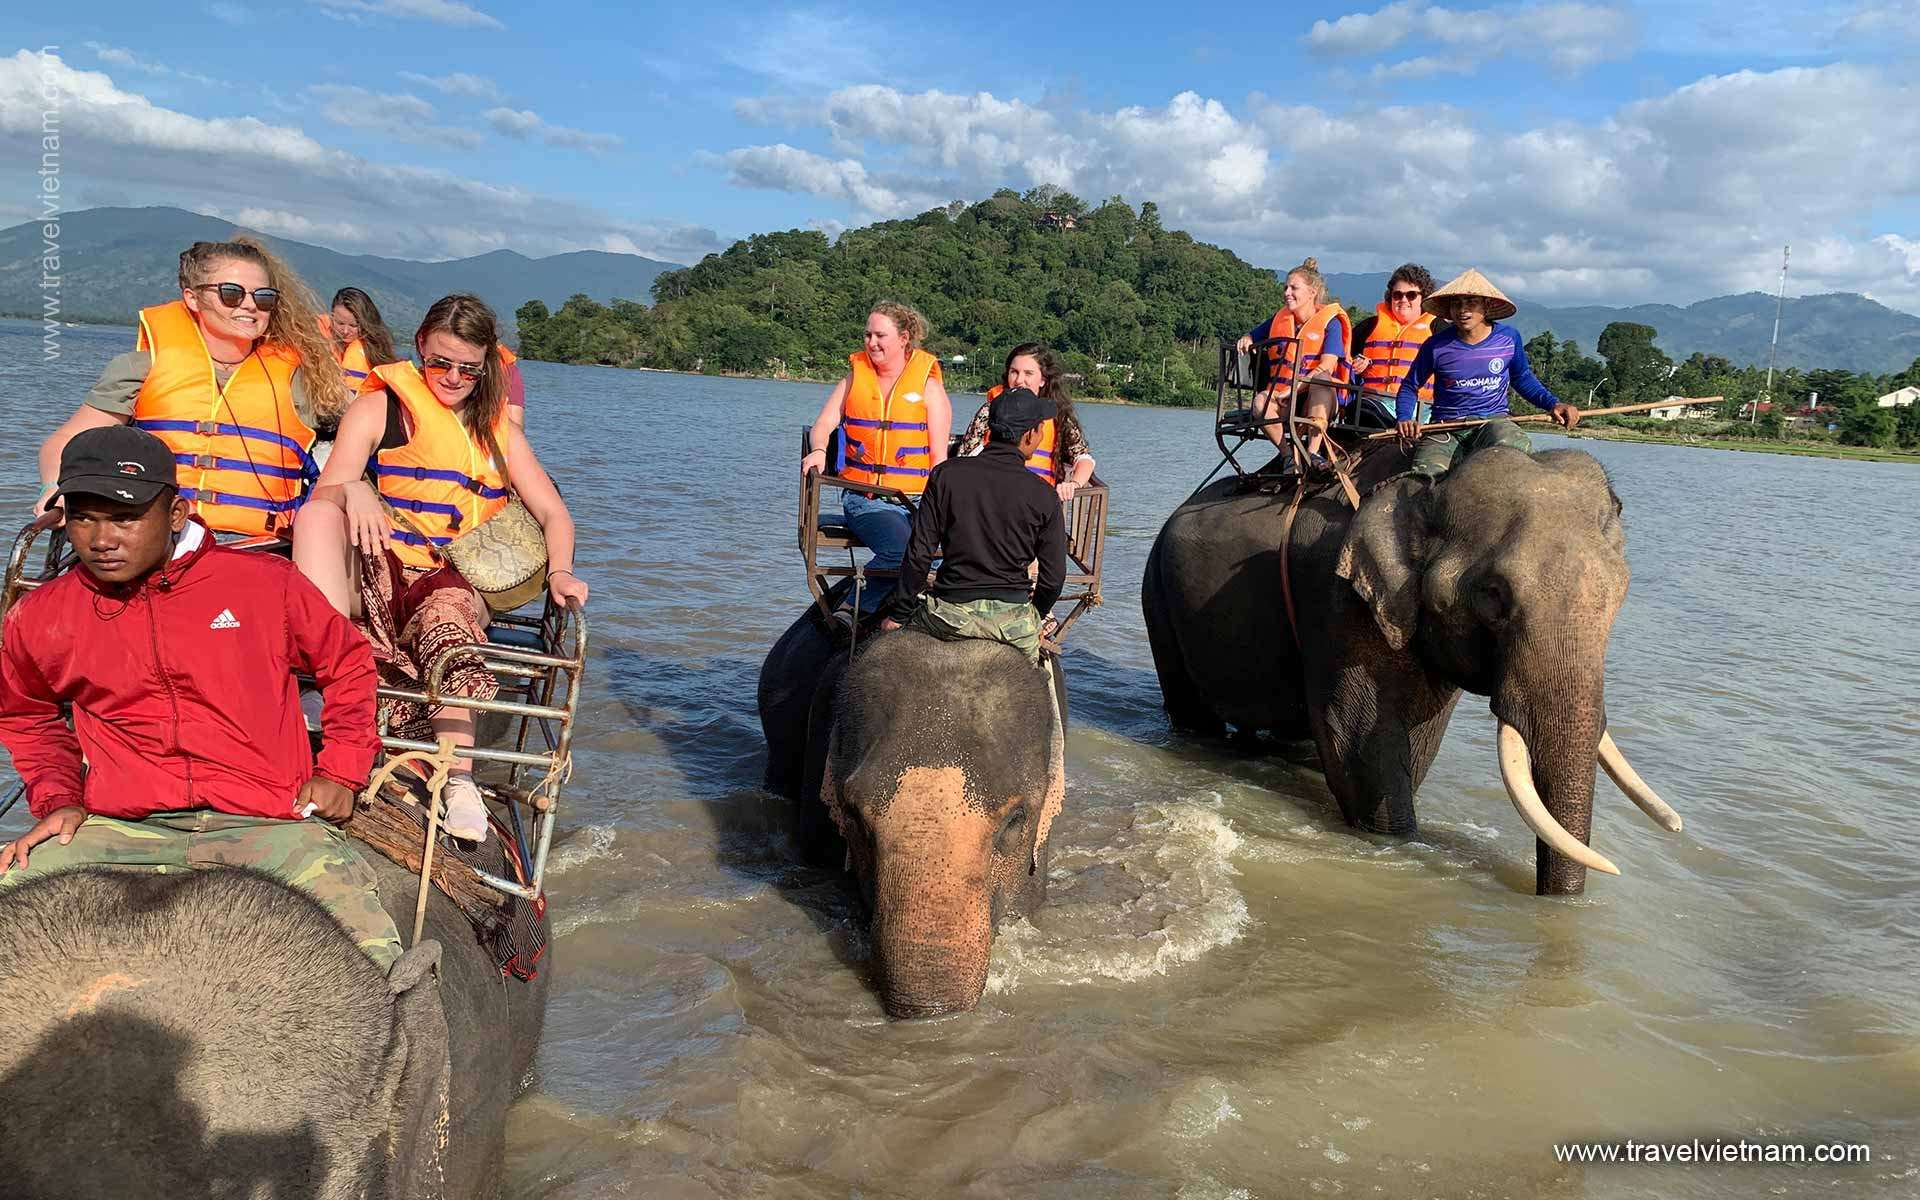 Riding Elephant in Buon Me Thuot